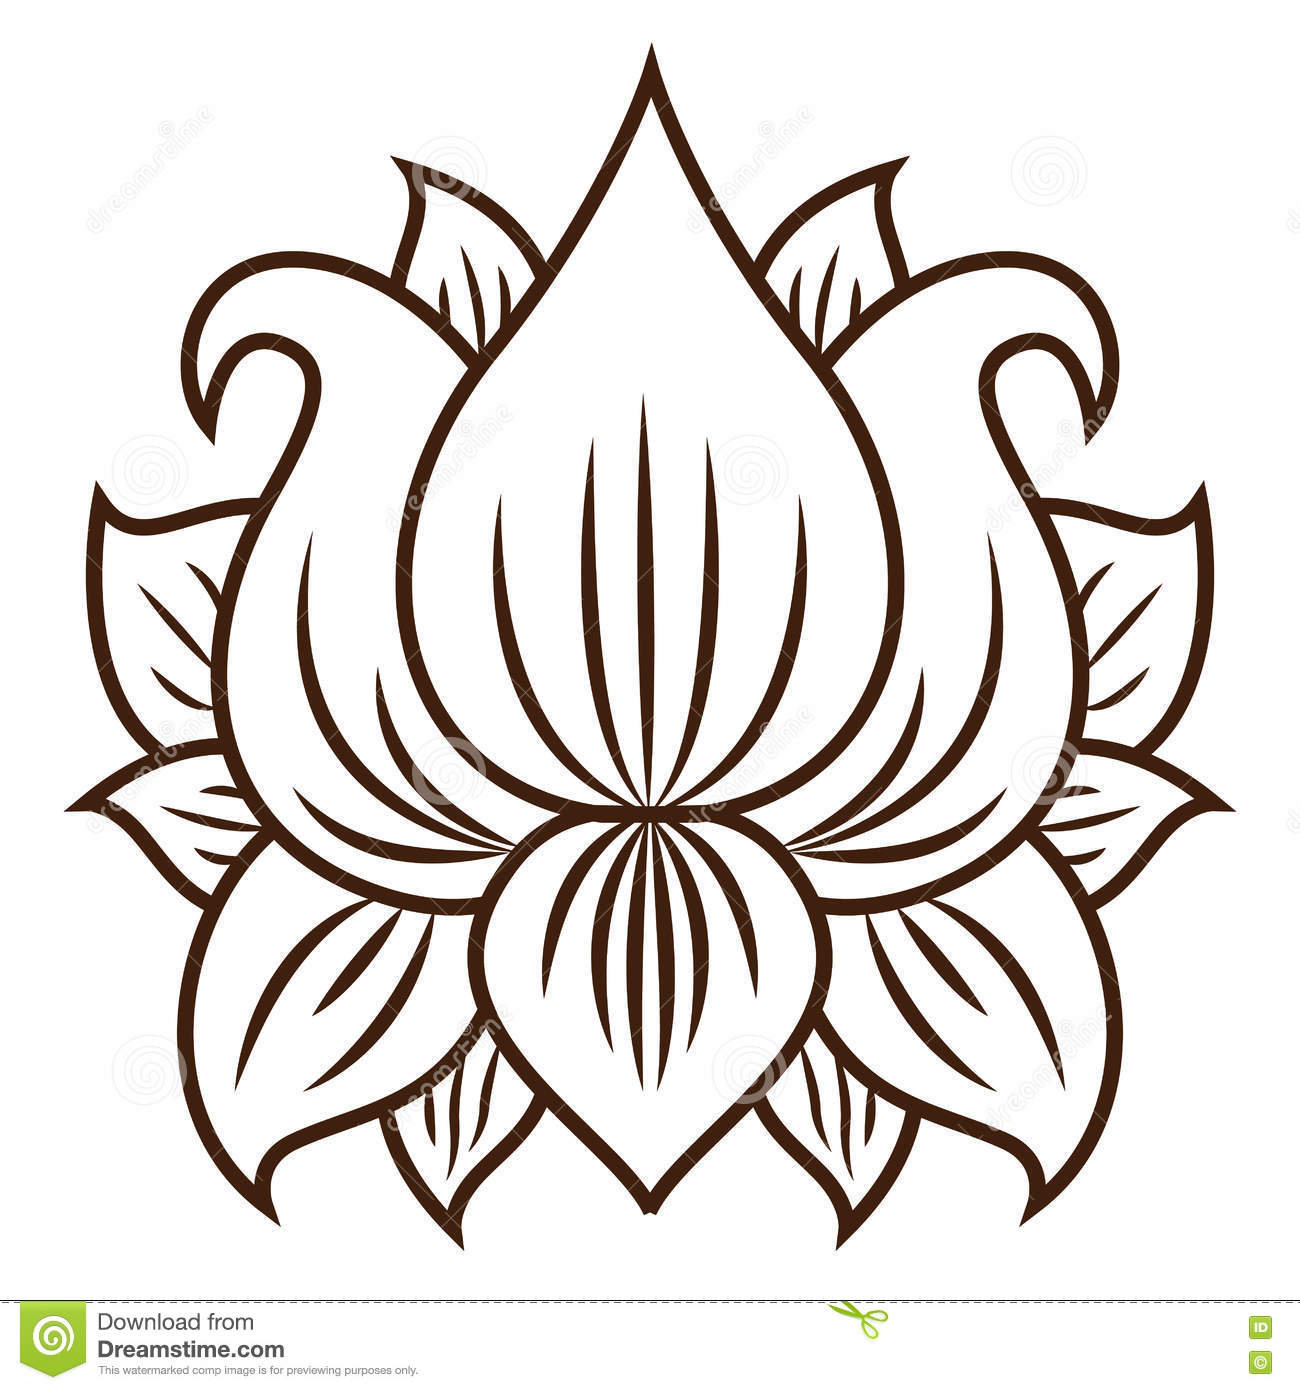 Isolated Lotus Flower Design Stock Vector Illustration Of Botany